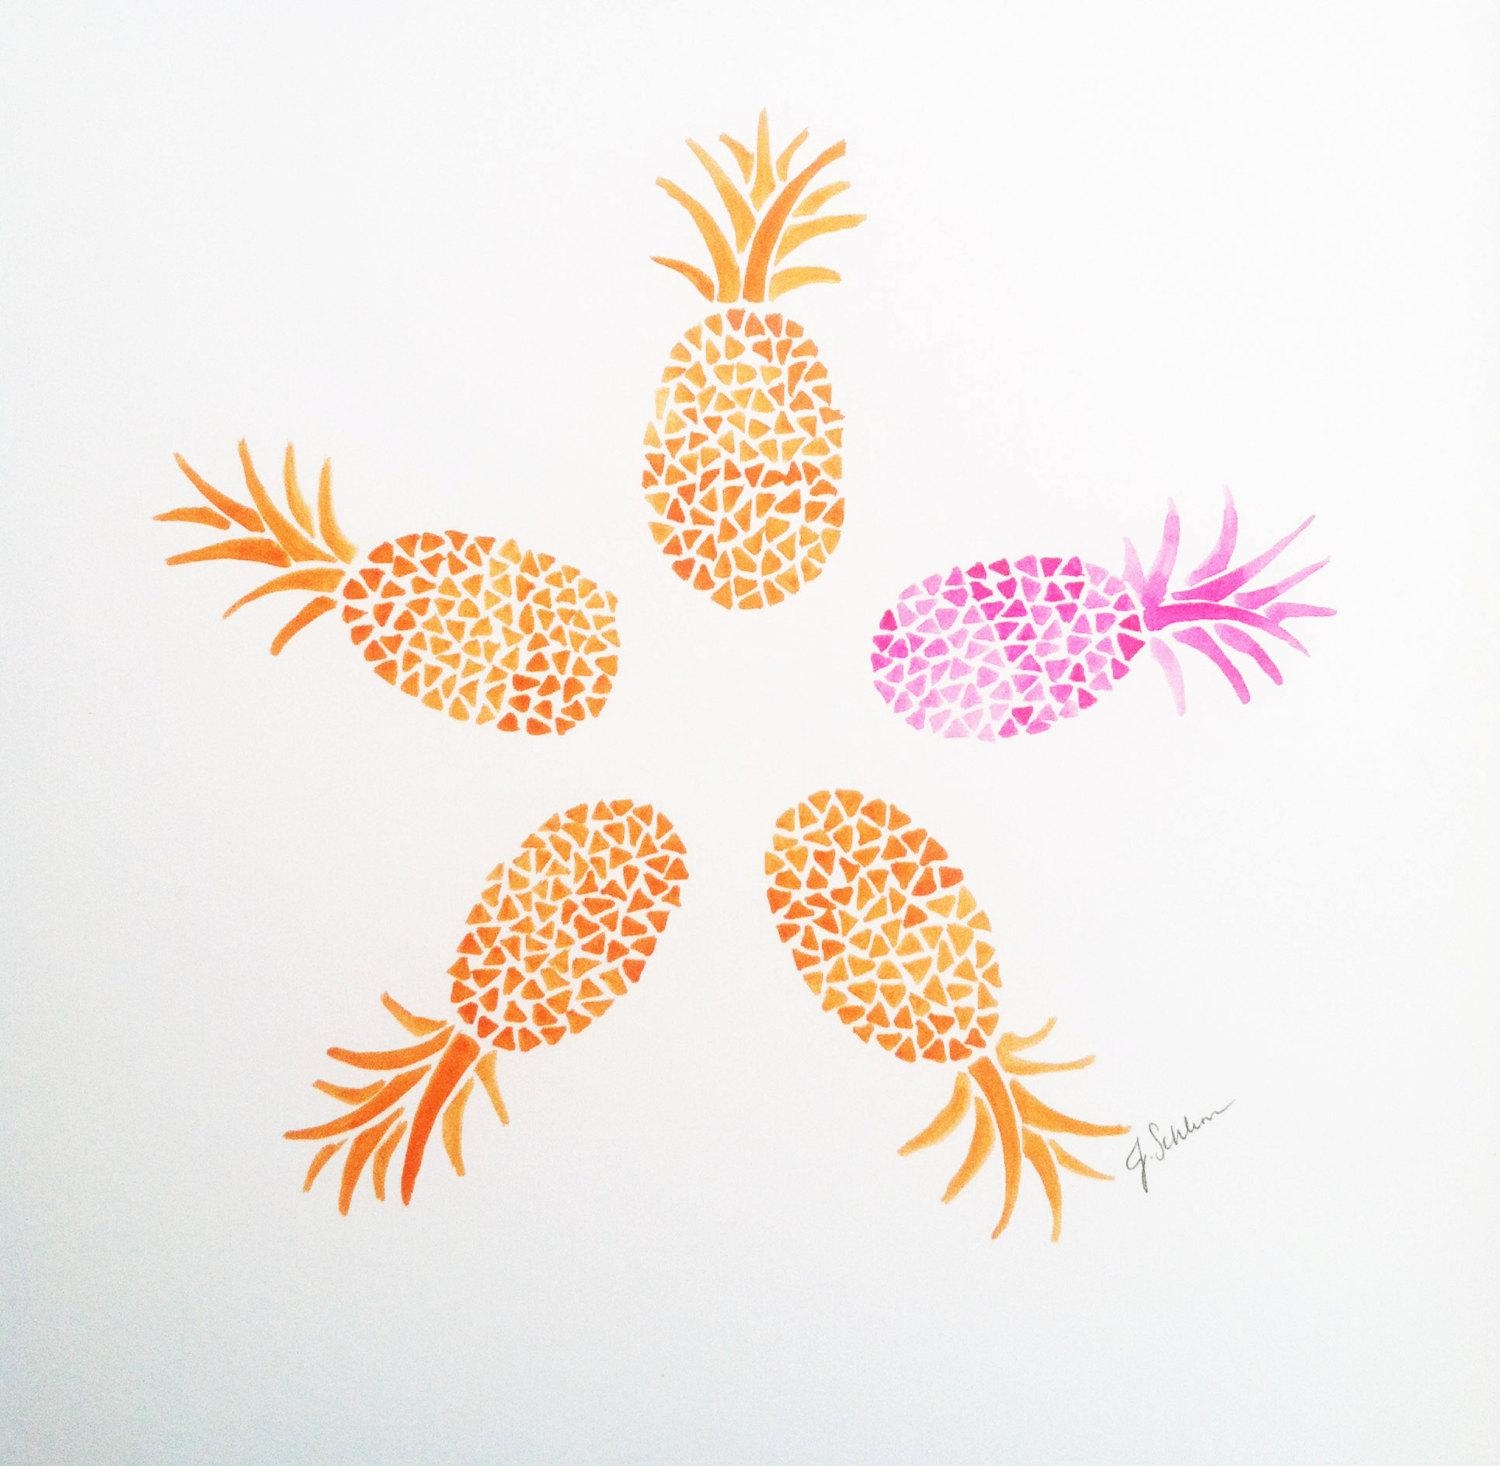 Original Hand Painted Pineapple Art Orange Pineapple Throughout Pineapple Metal Wall Art (Image 12 of 20)